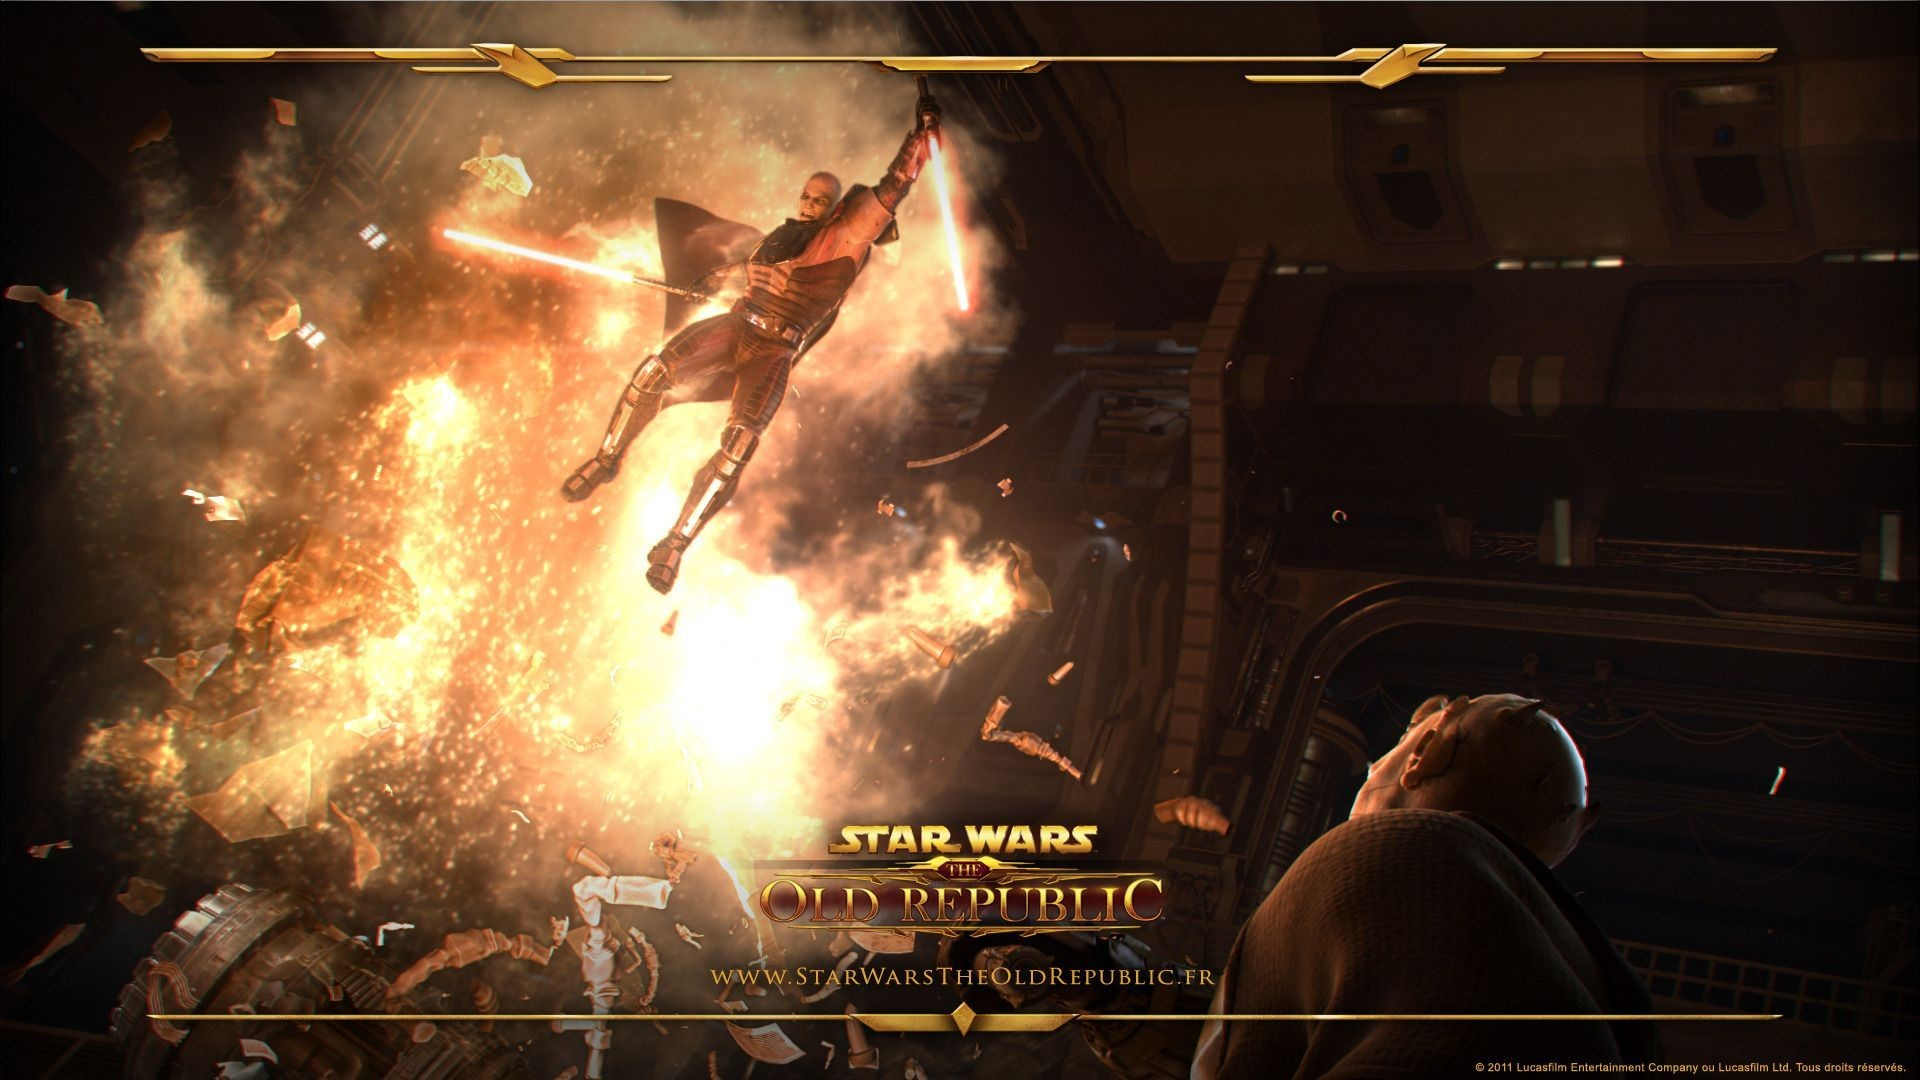 1920x1080 Star wars: The Old Republic - Star Wars Wallpaper (26970240) - Fanpop